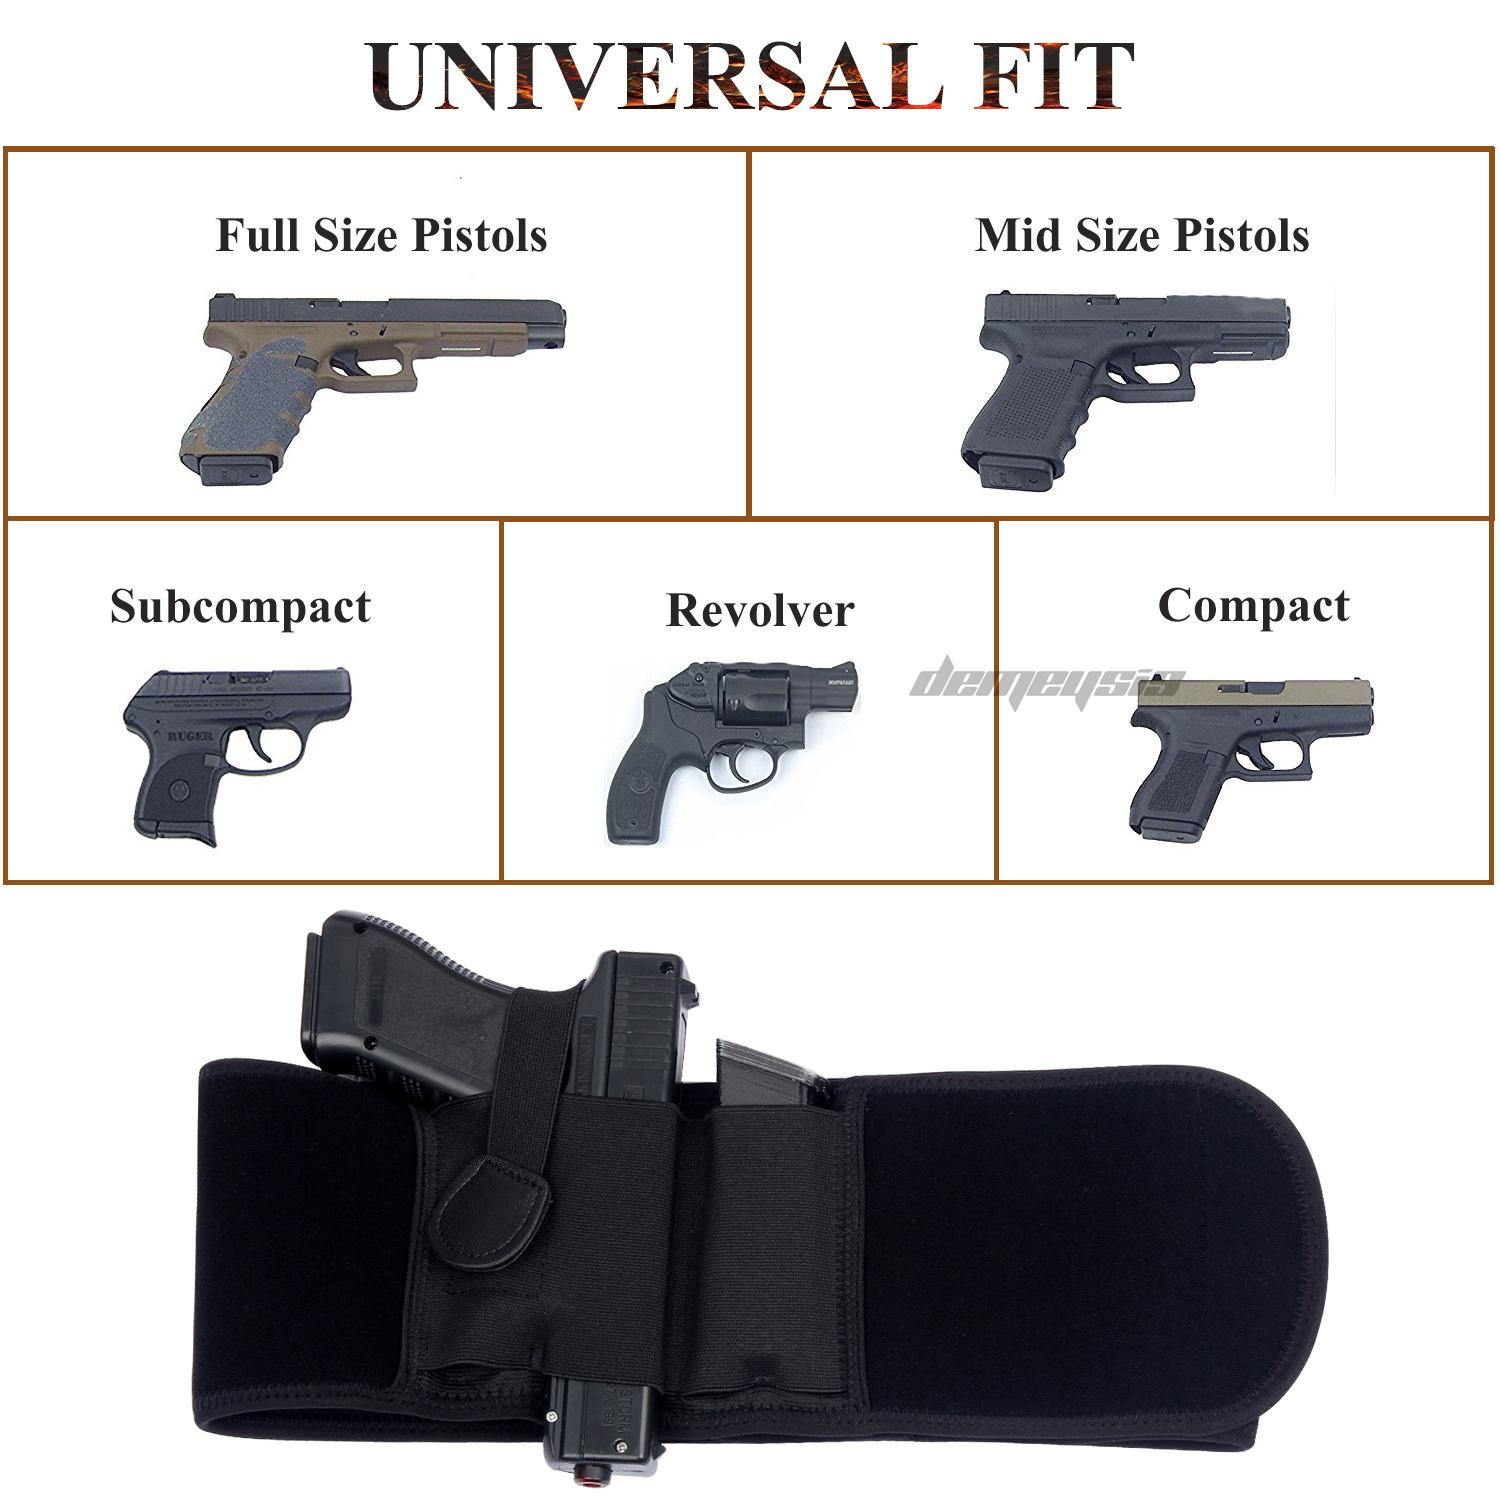 Tactical Universal Concealed Carry Pistol Gun Clip Holster fits All Revolvers